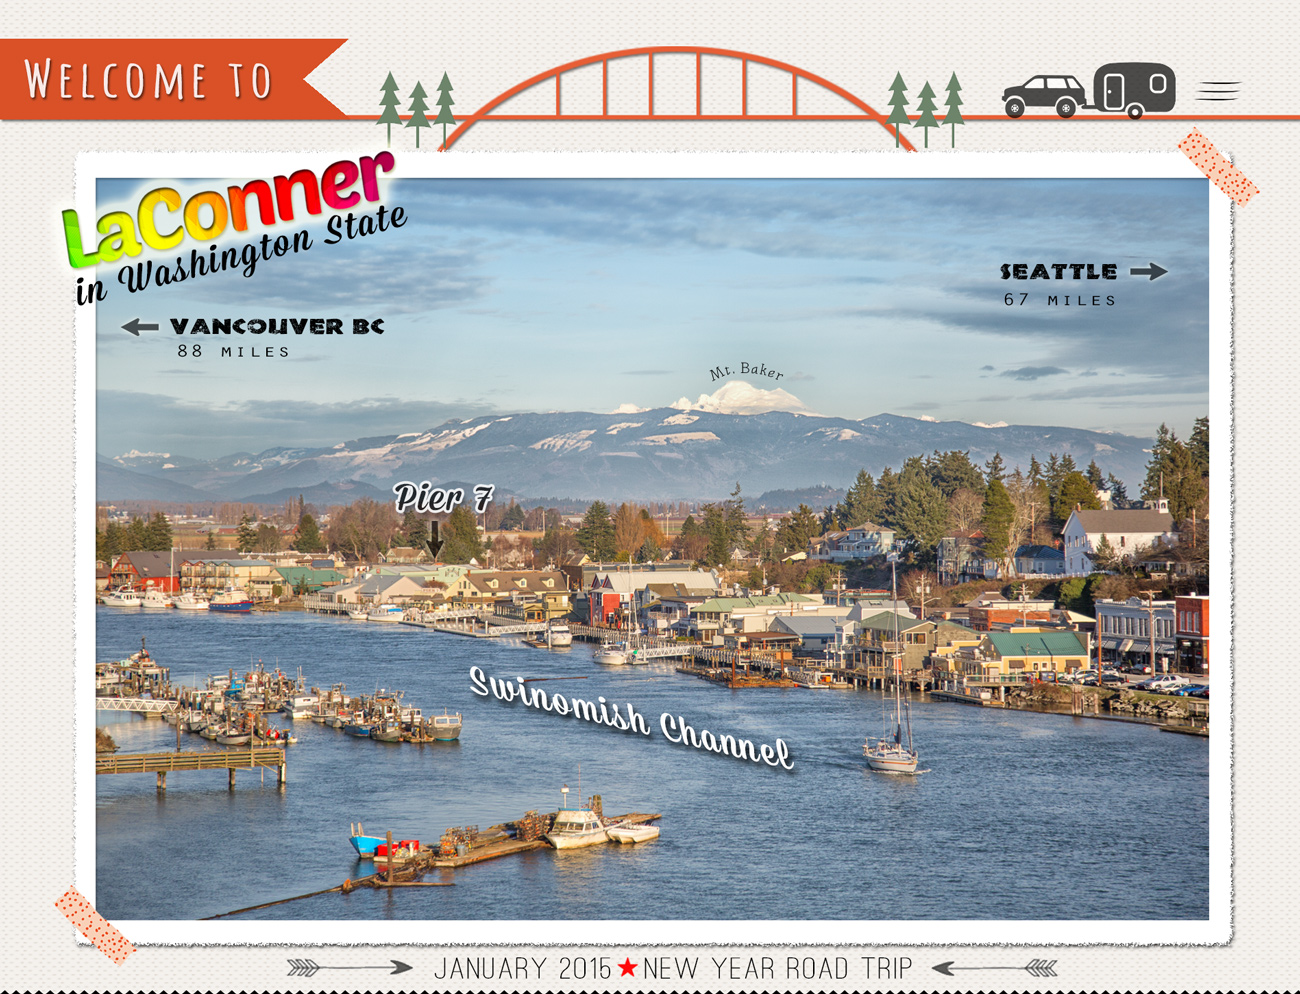 LaConner, Washington Town Guide via J5MM.com